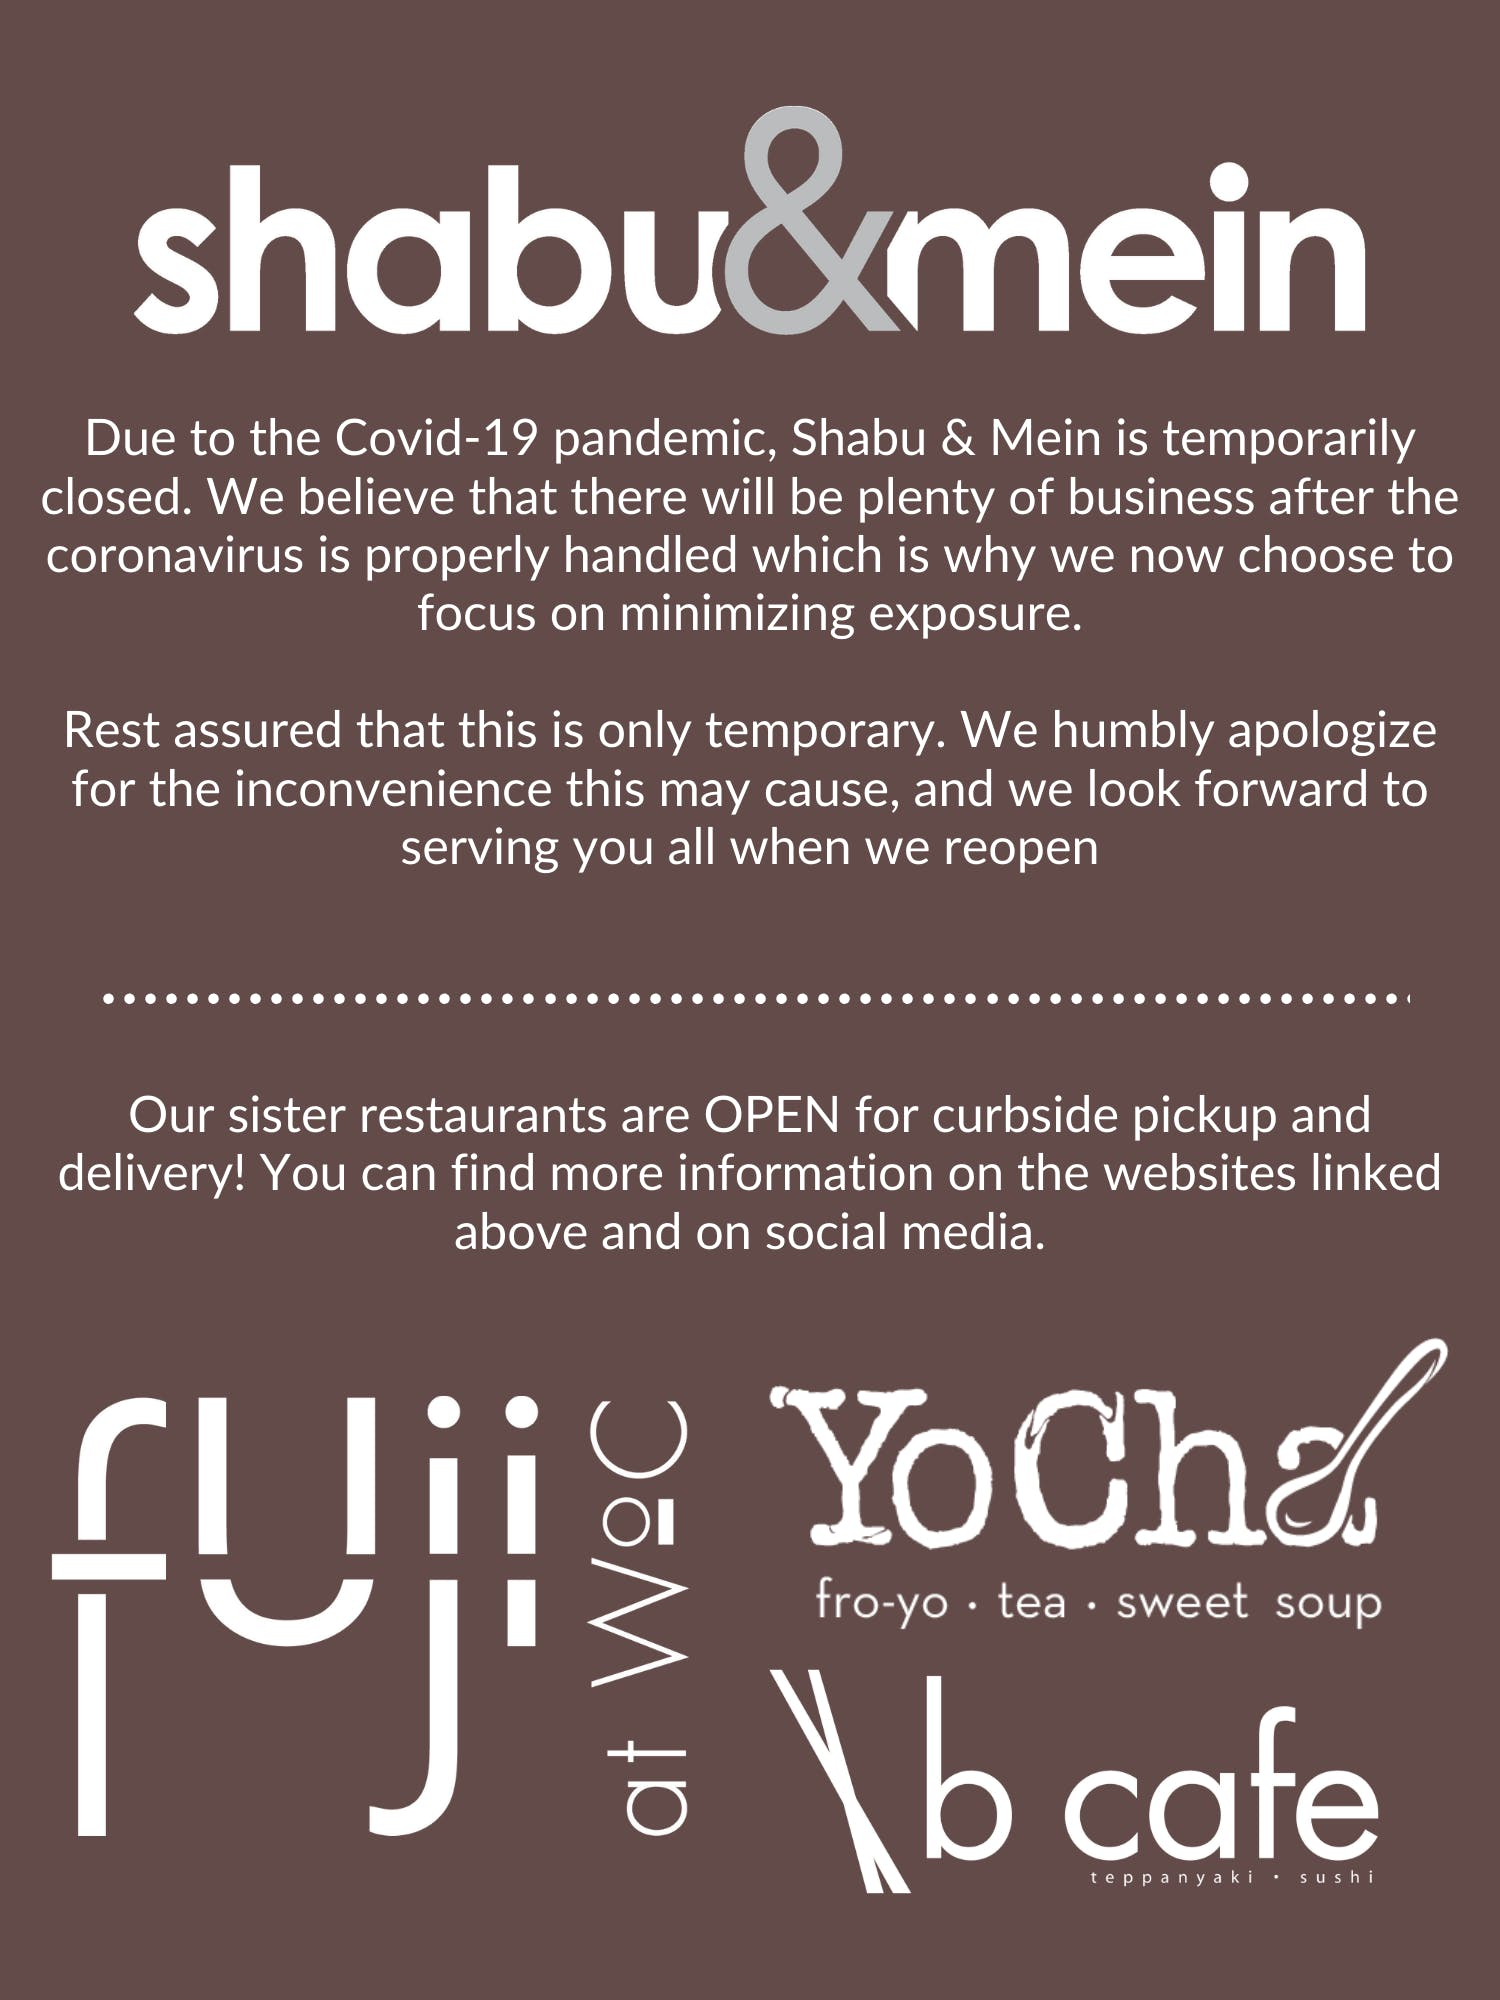 Shabu & Mein is currently closed due to the Covid-19 pandemic. Please check out our sister restaurants Fuji at WoC, B Cafe, and YoCha!